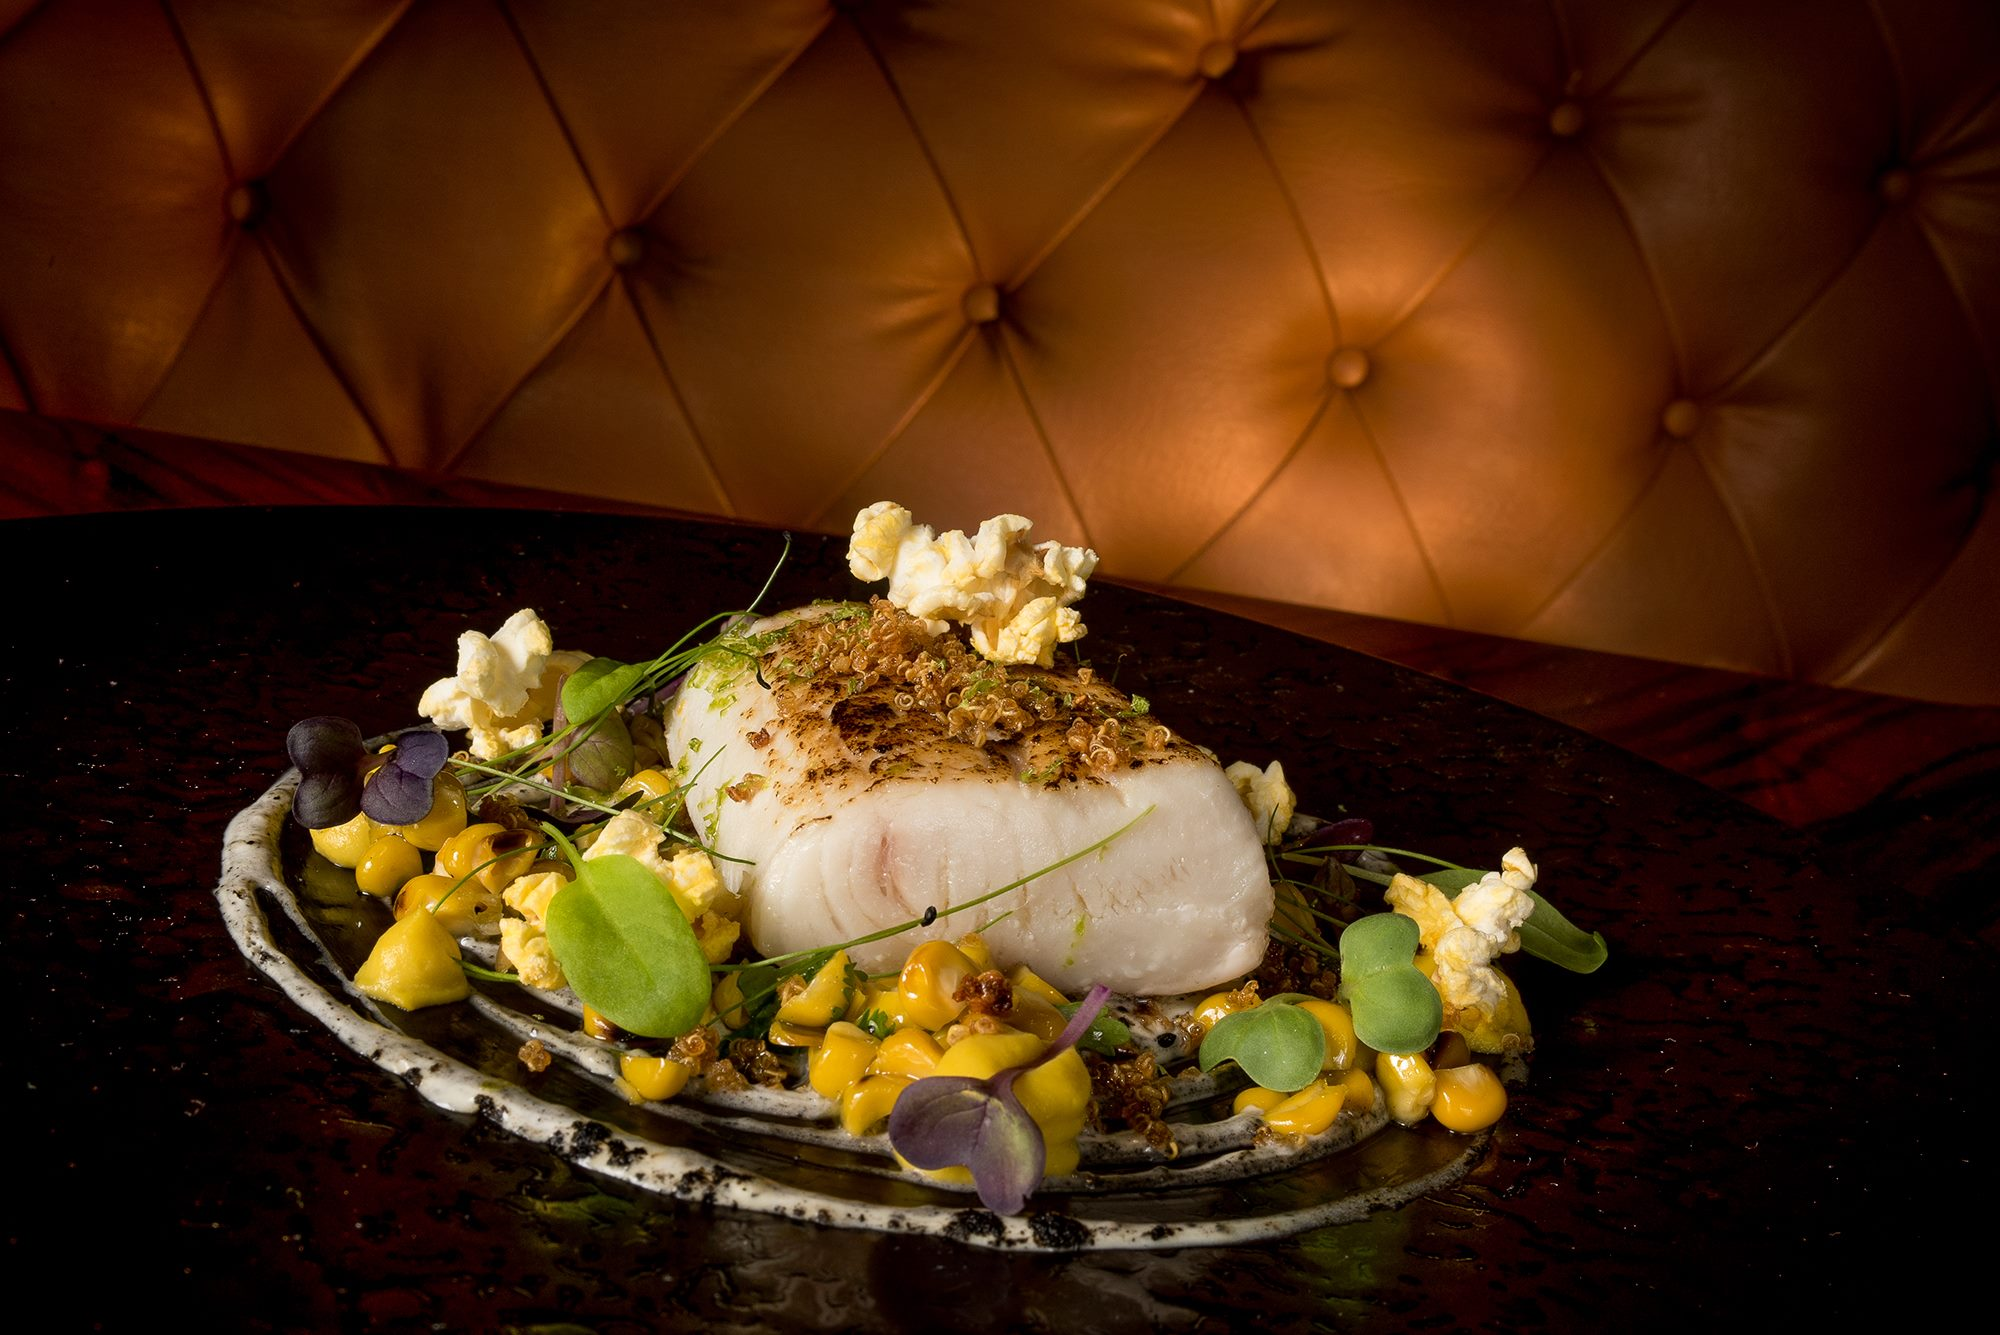 181206 Dish-Kingfish Grilled Corn, Sour Cream, Qinnoa&Lime, Cleanseas Hiramasa Yellow Tail Kingfish Eyre Peninsula, South Australia.jpg